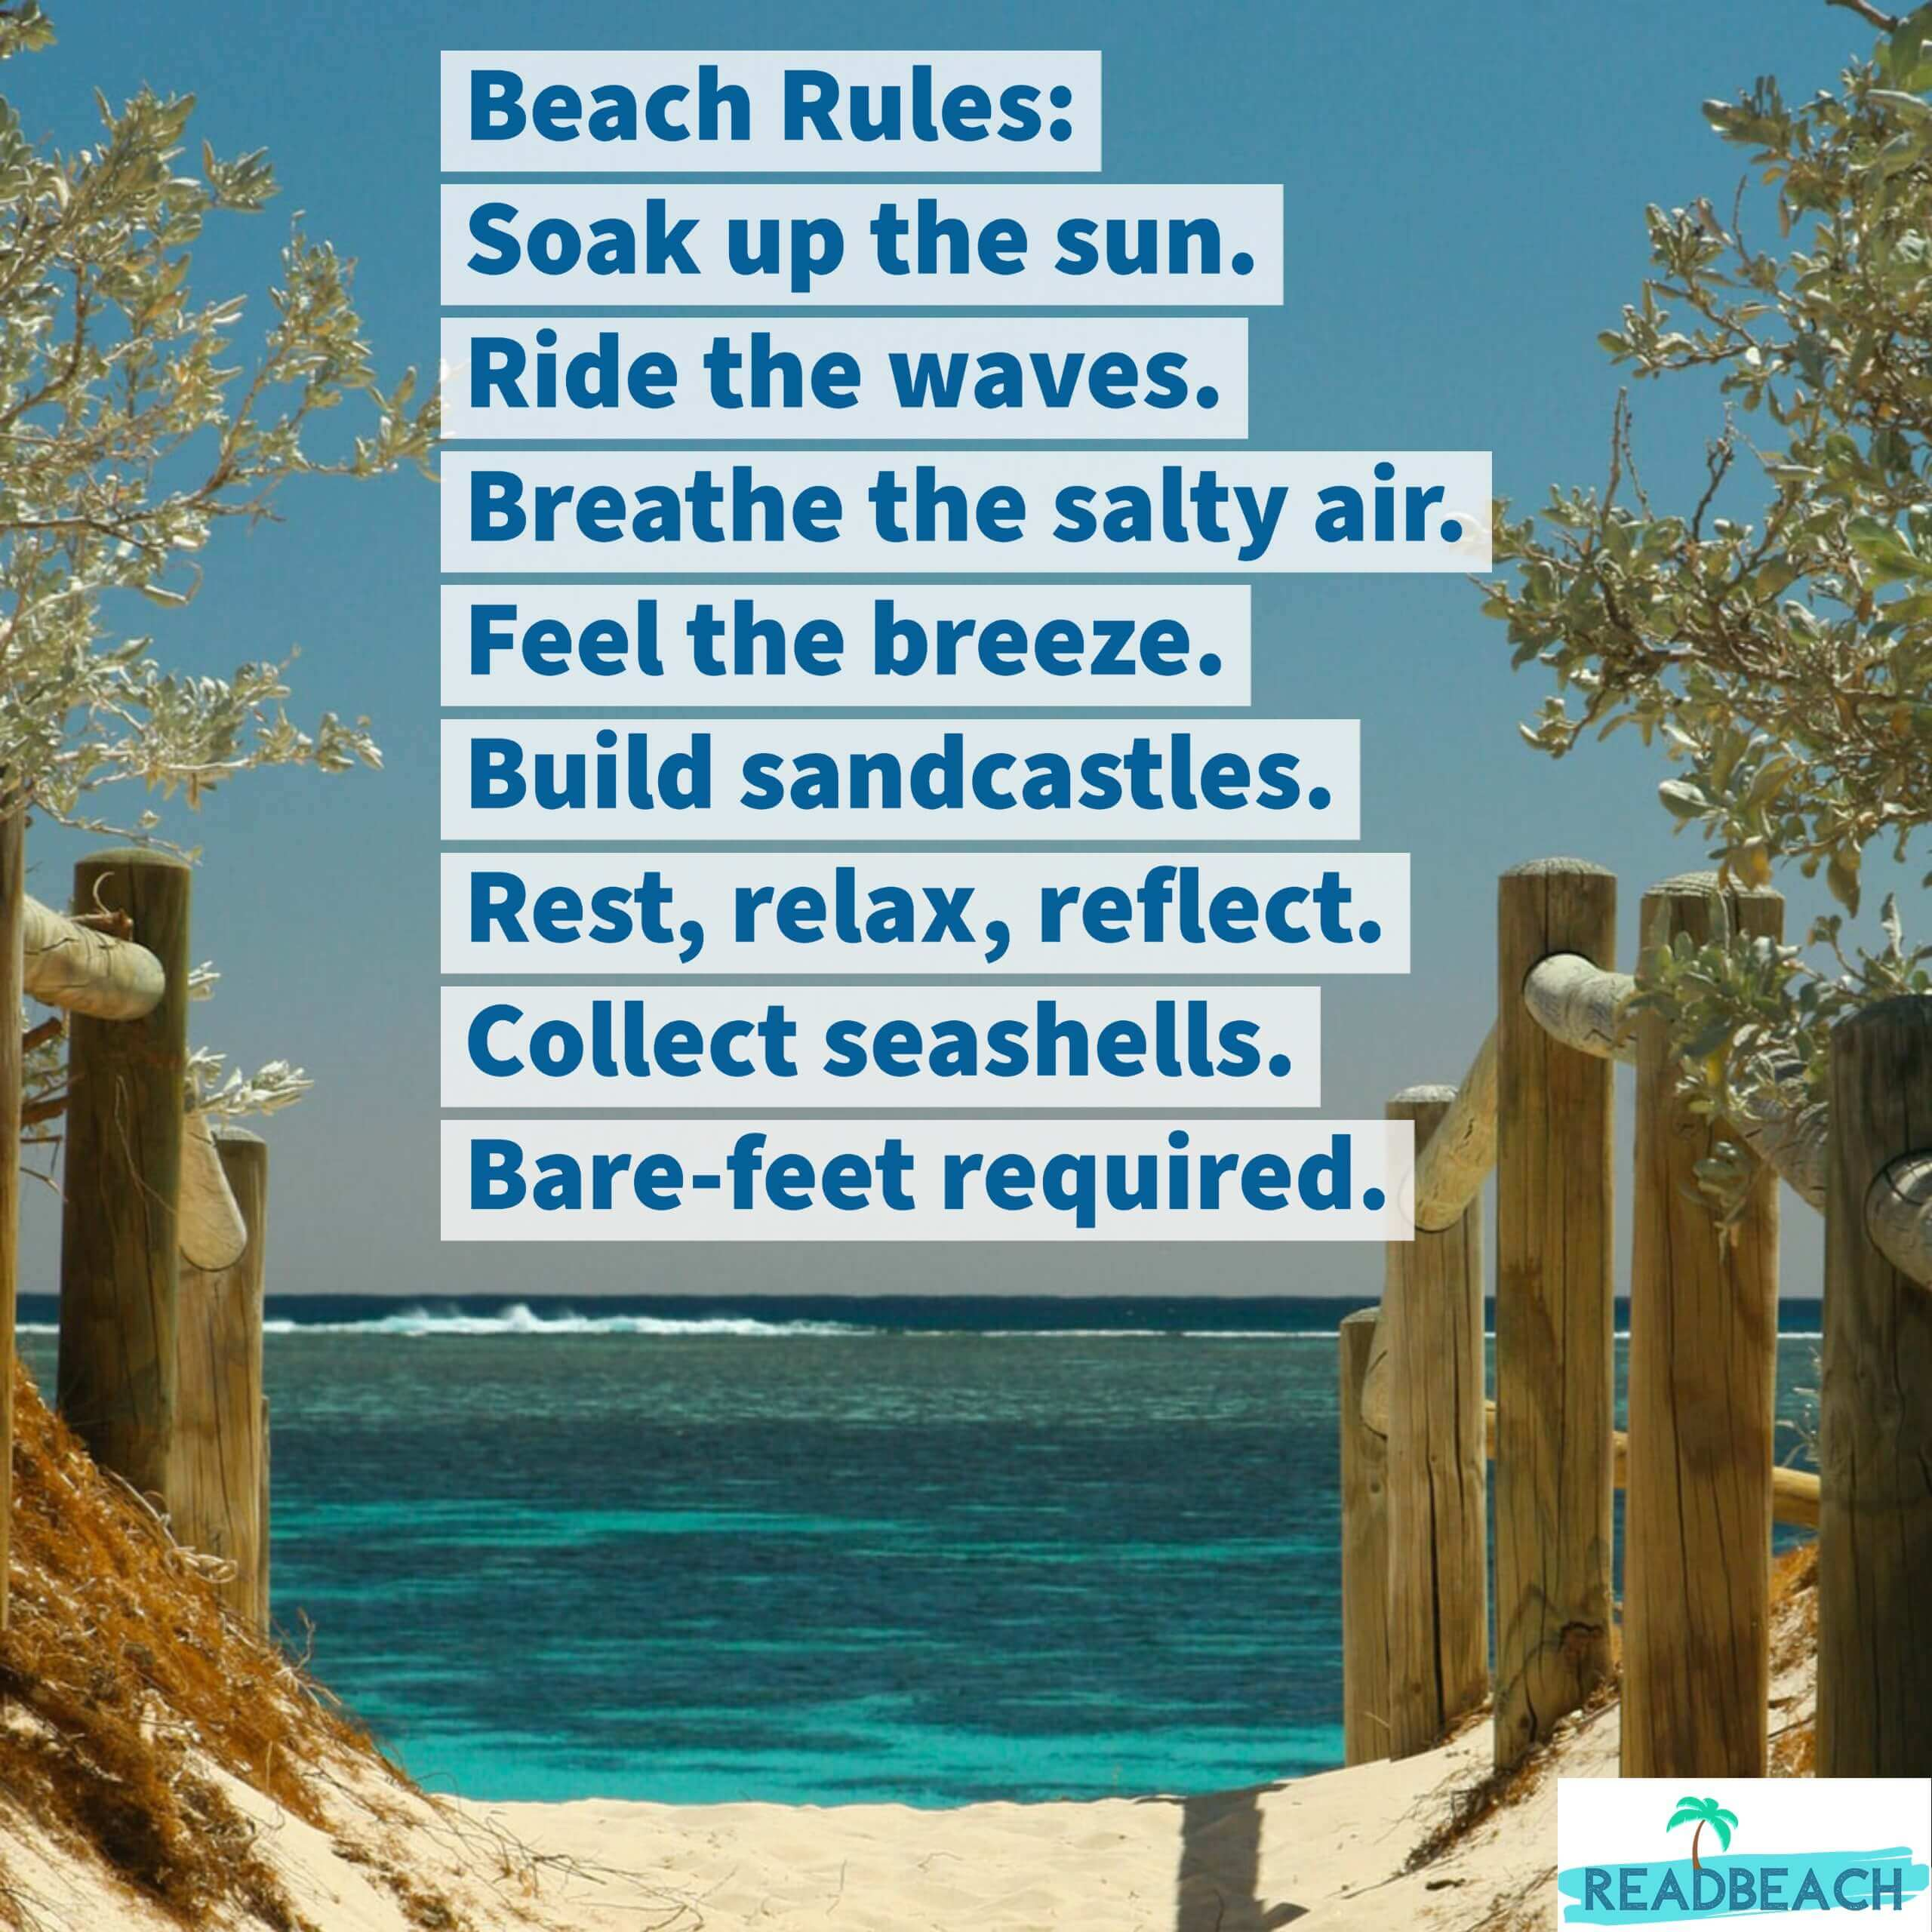 62 Eat Quotes with Pictures 📸🖼️ - Beach Rules: Soak up the sun. Feel the breeze. Rest, relax, reflect.